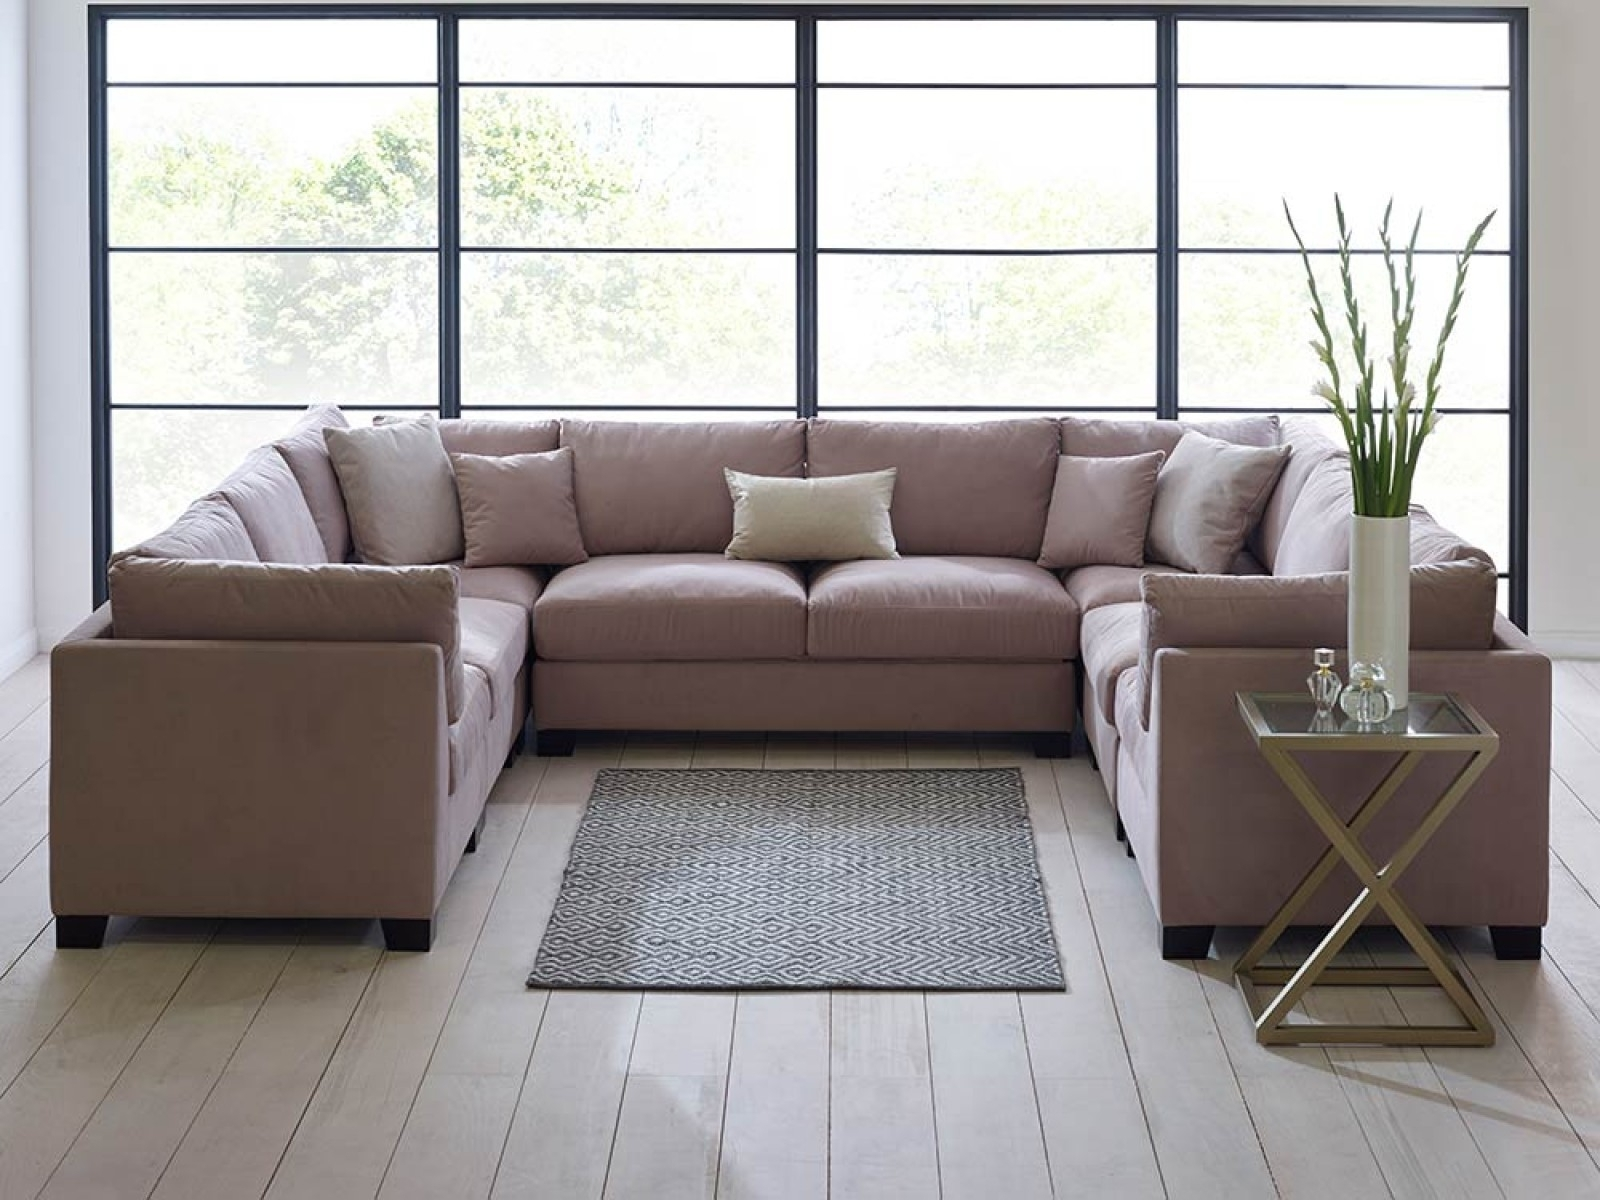 Sofa Set Pertaining To Modern U Shaped Sectional Sofas (View 2 of 20)